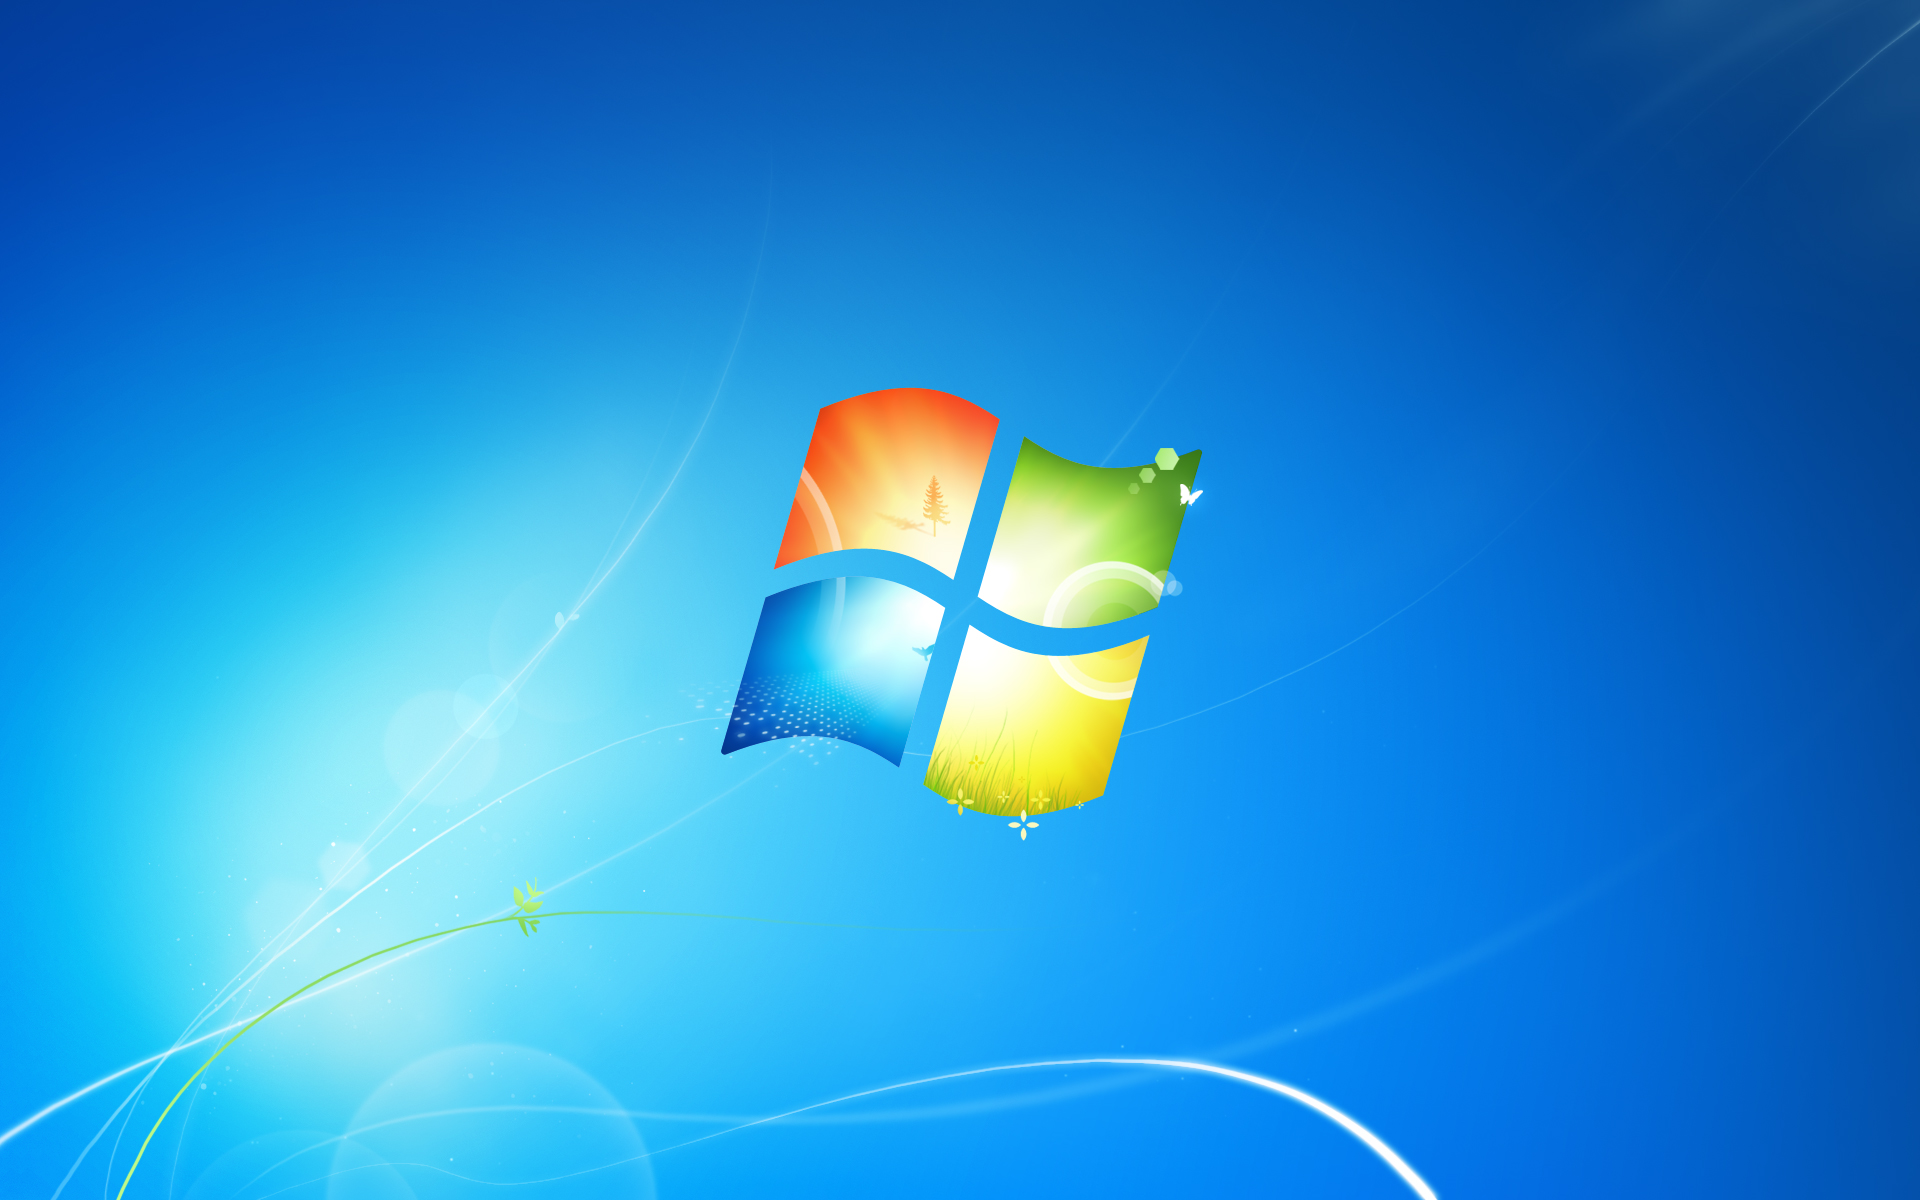 Transform Windows Vista into Windows 7 without using Customization 1920x1200